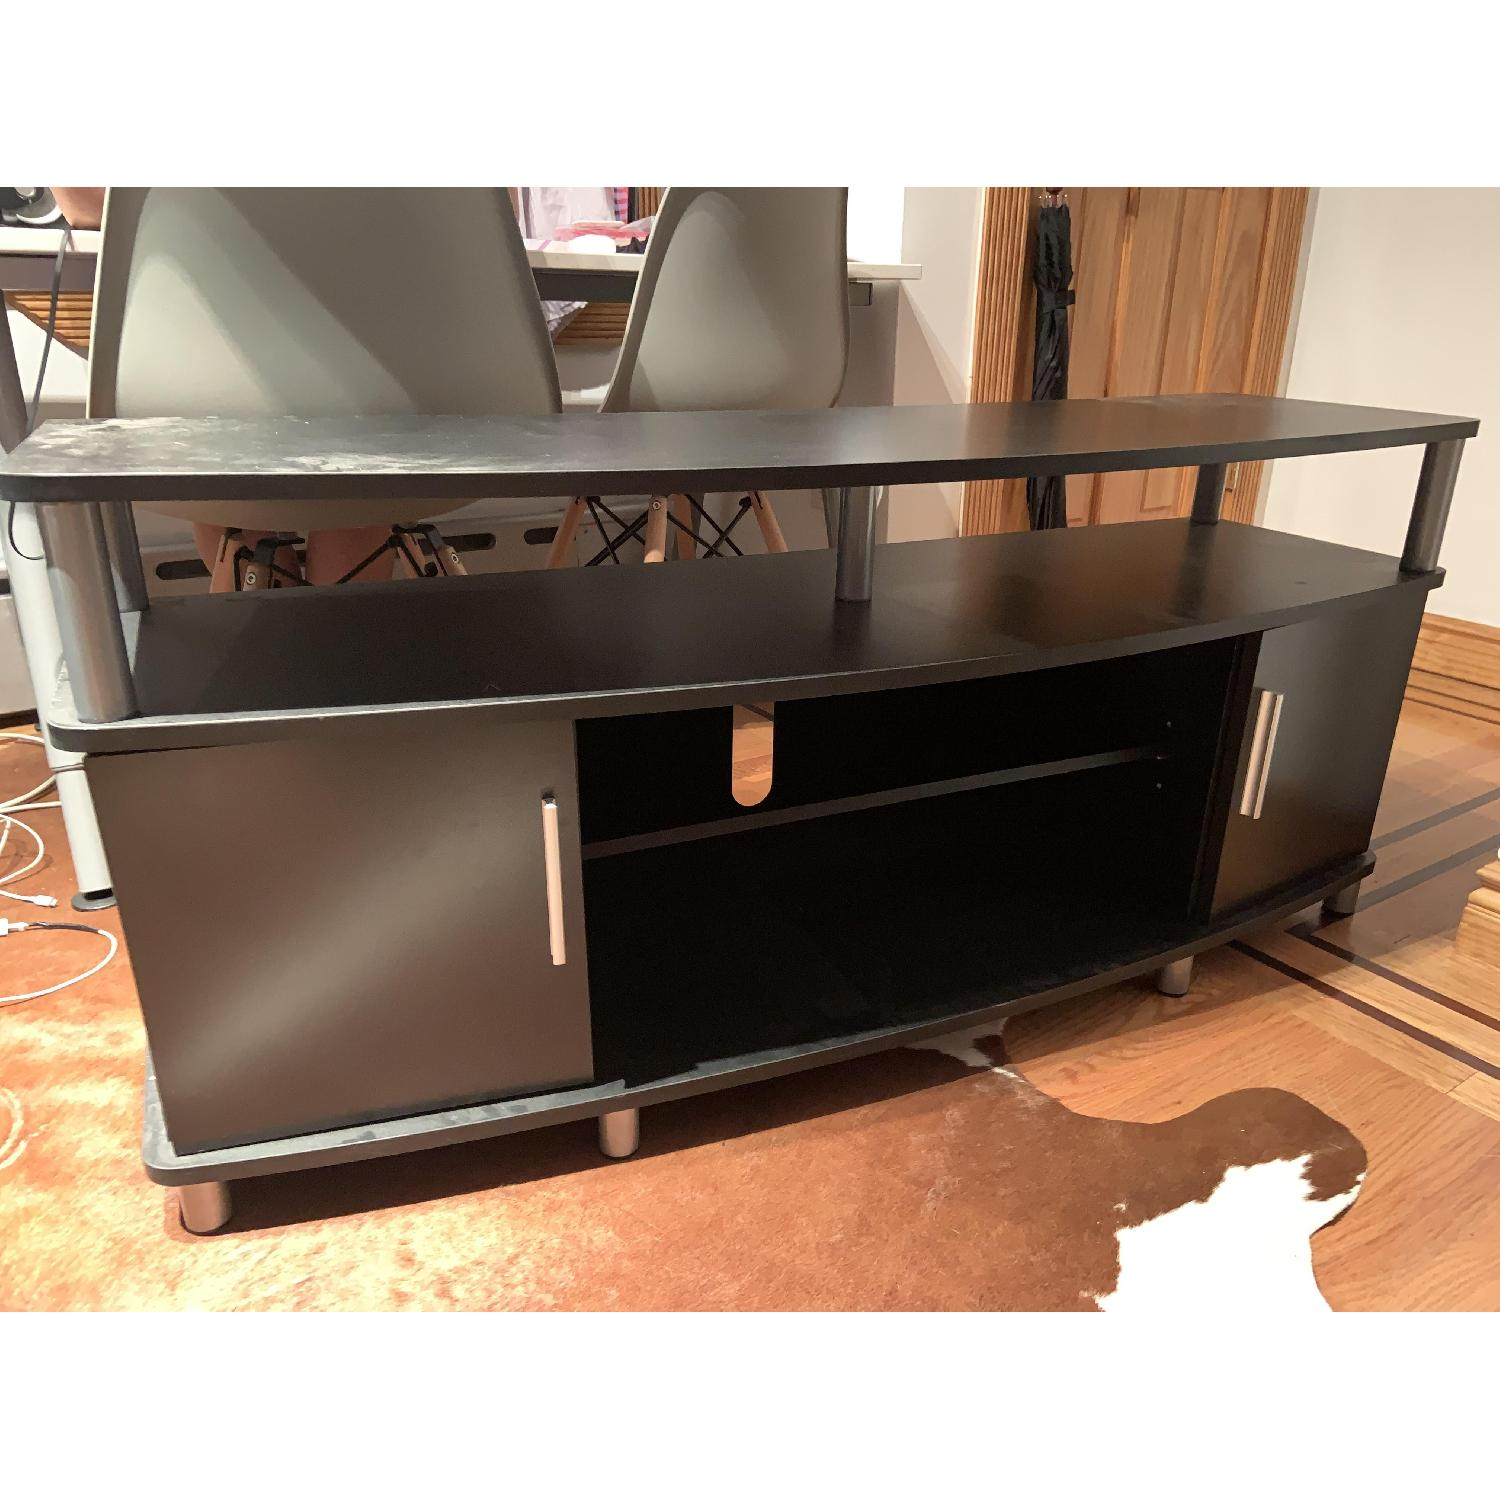 Ameriwood Industries TV Stand/Media Cabinet